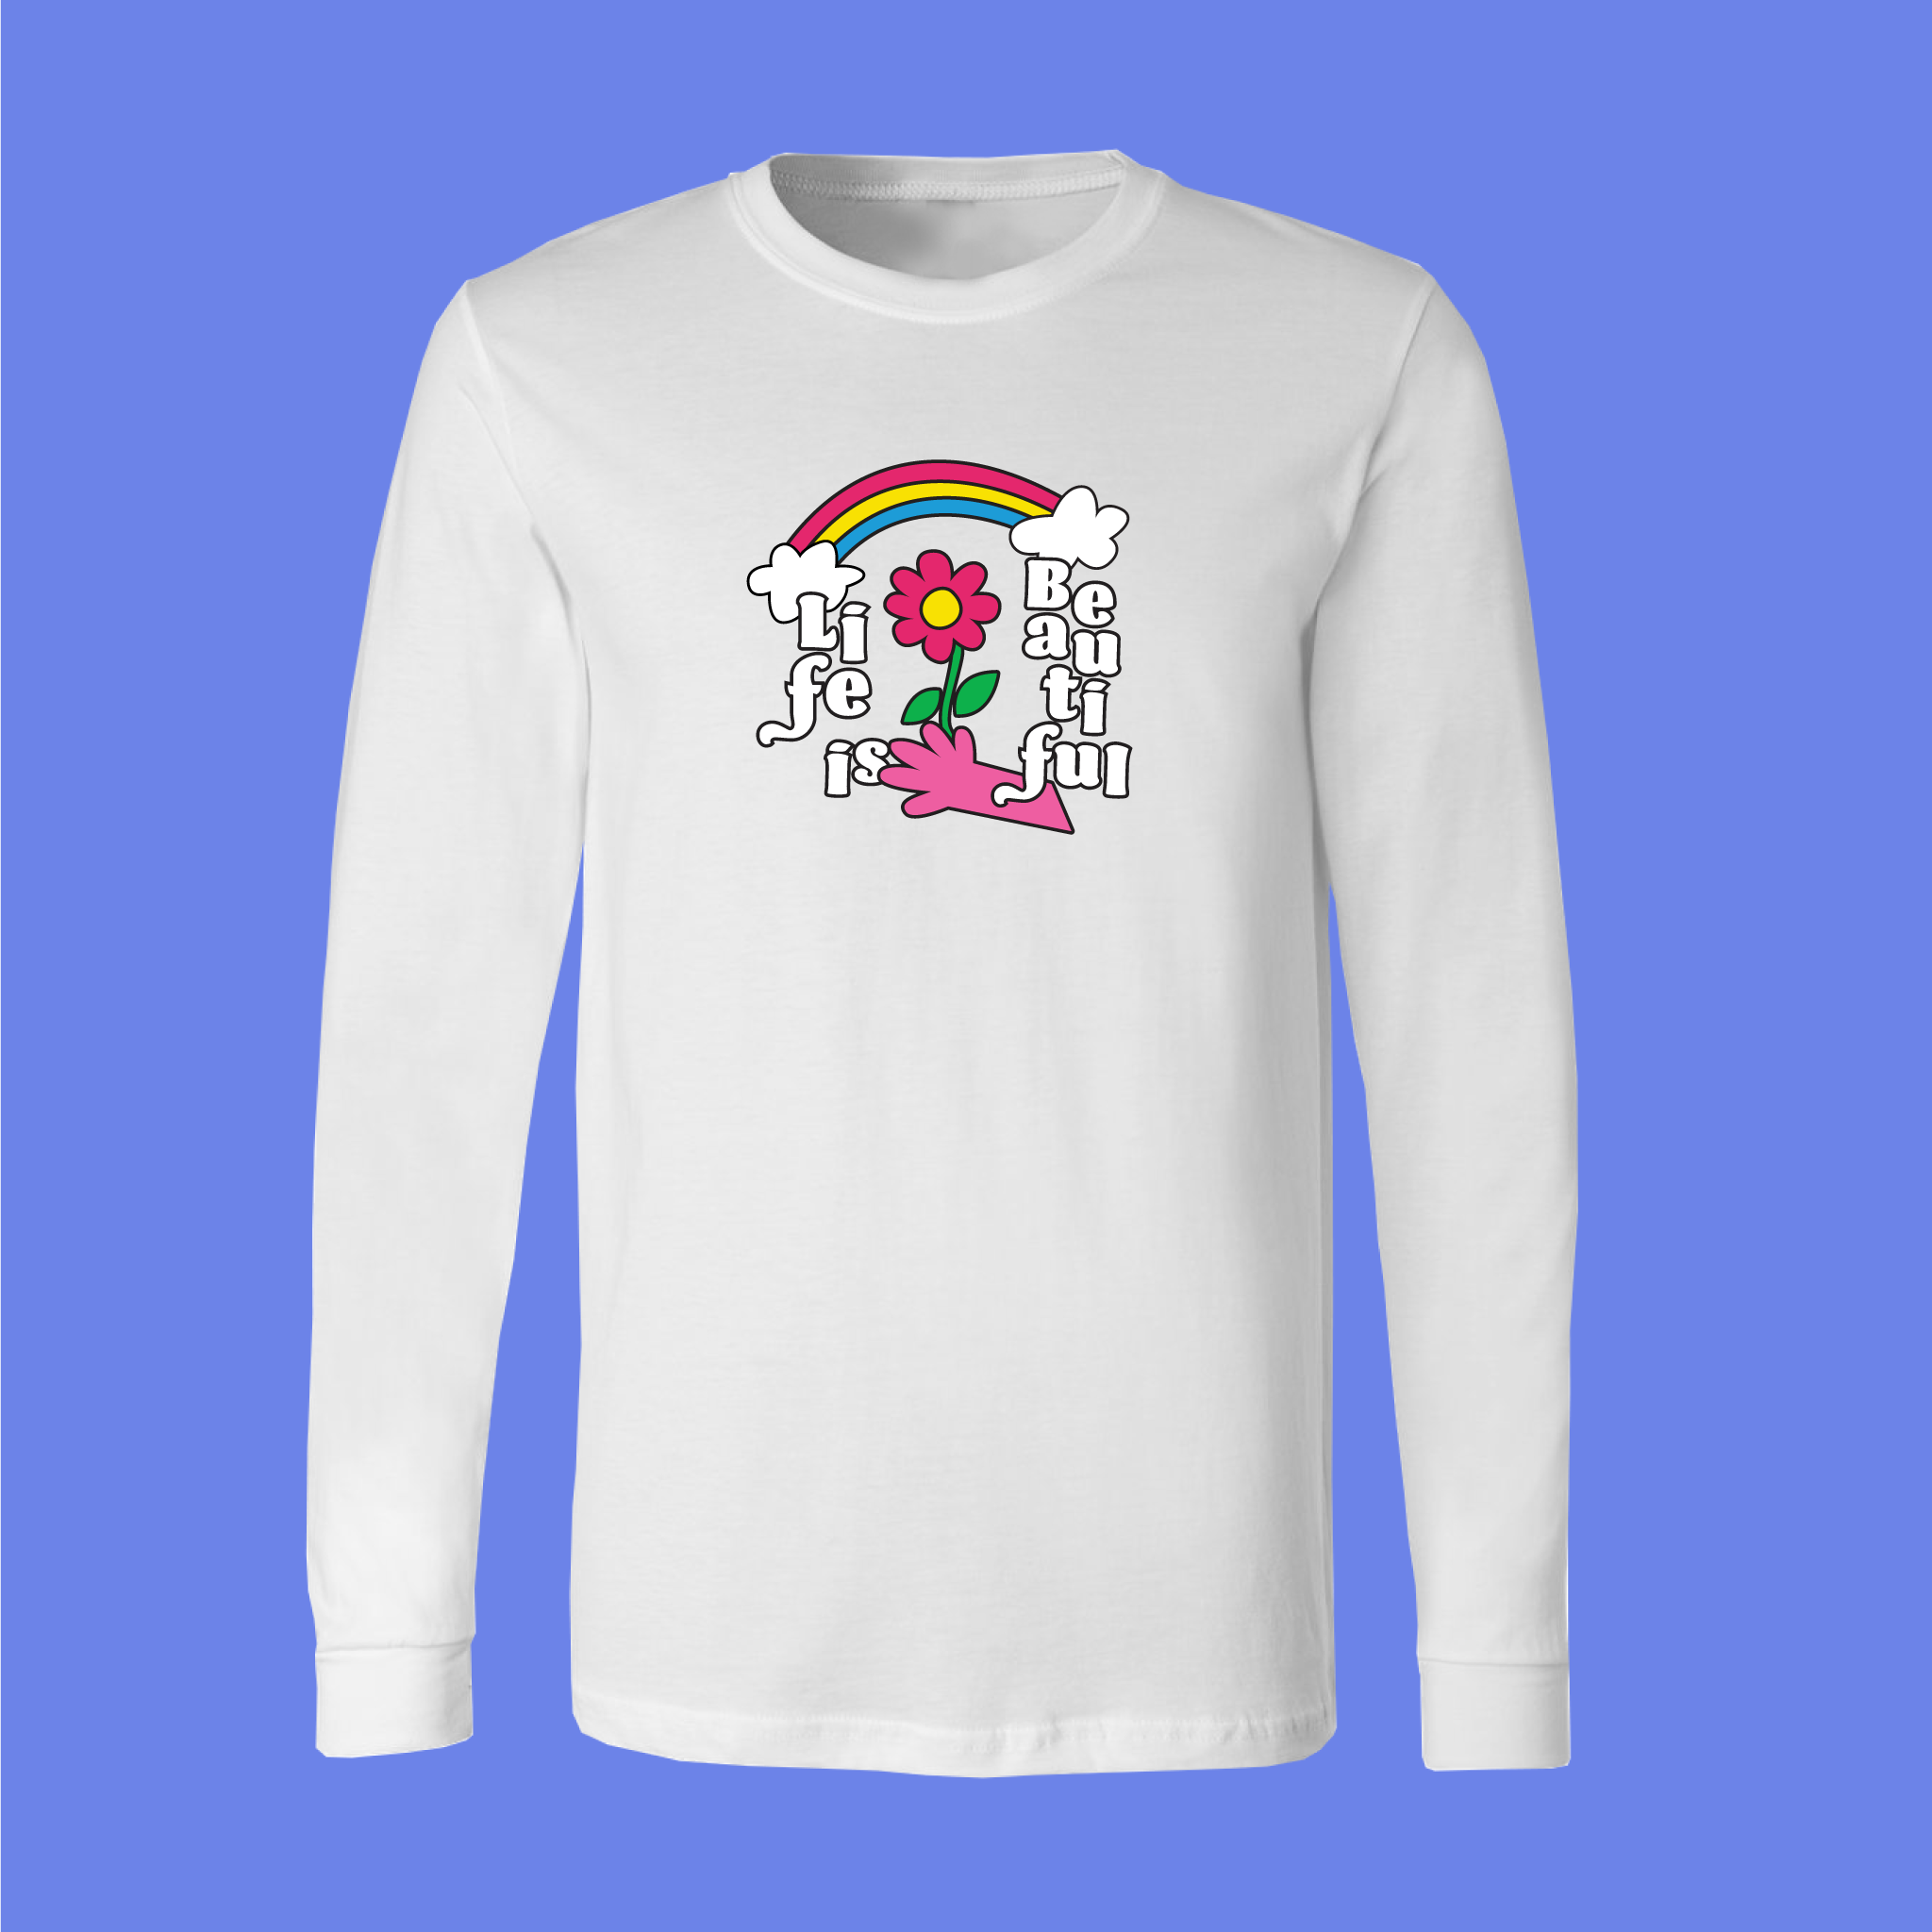 Flower Rainbow Longsleeve by Demir Mujagic